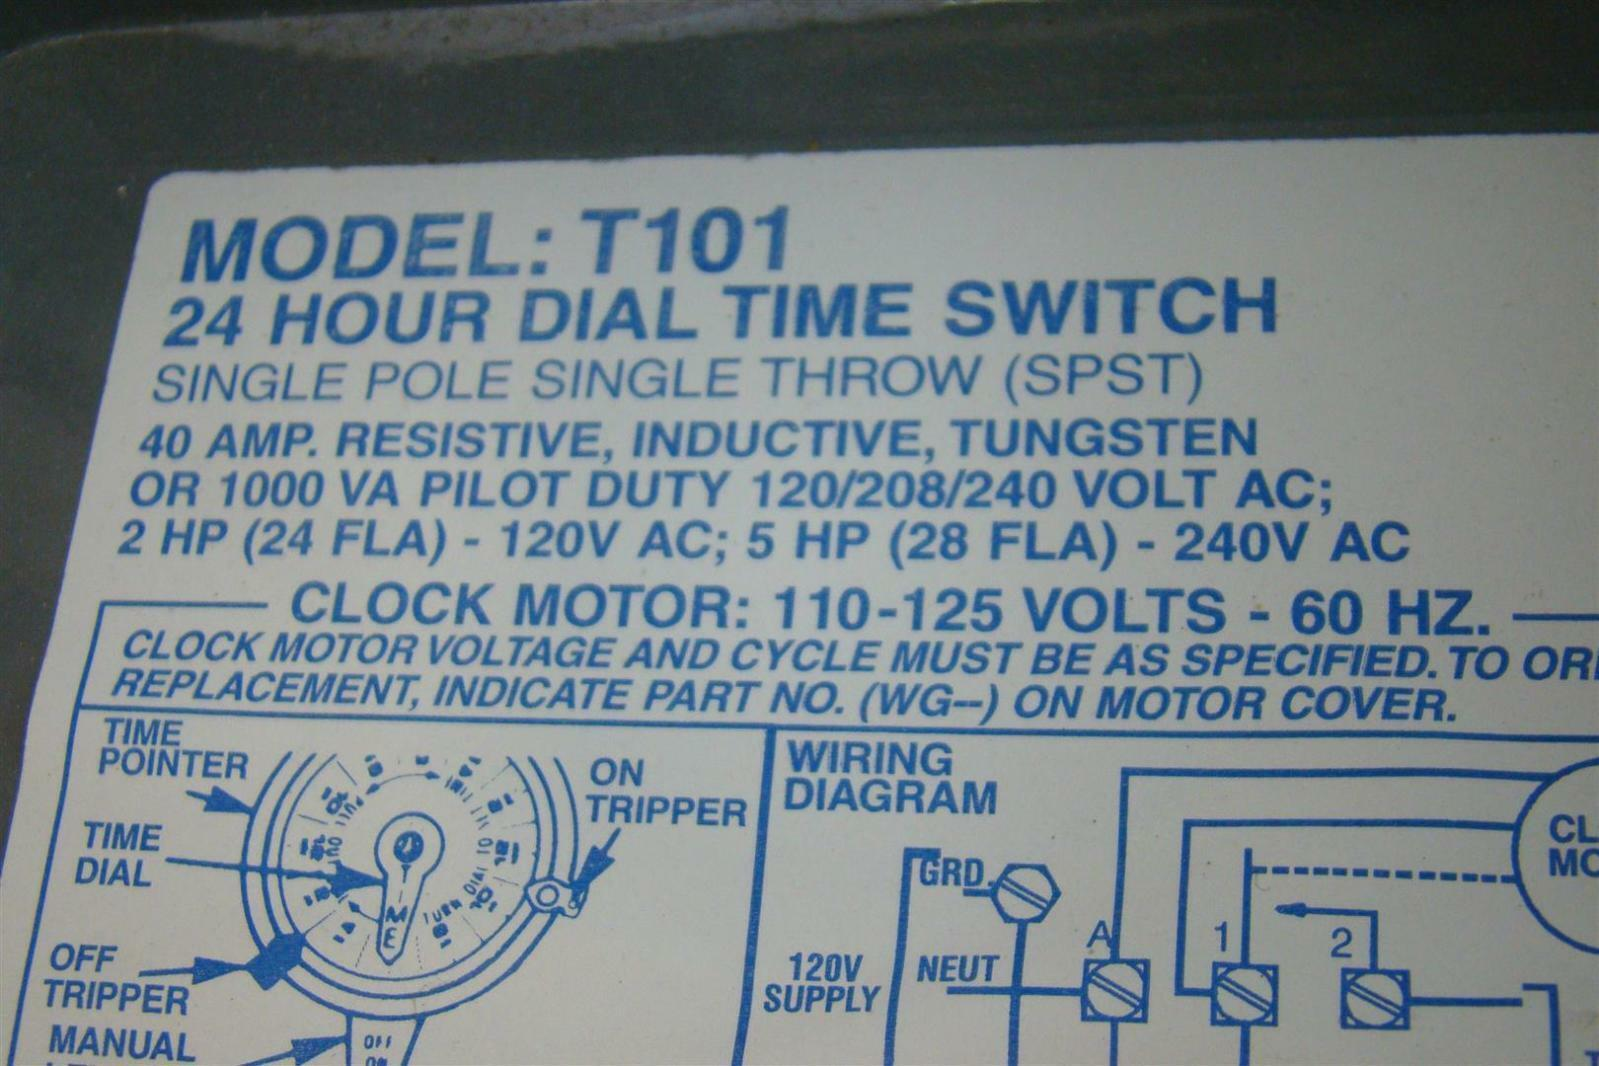 Volt Intermatic T Wiring Diagram on tork 1103 wiring-diagram, 277v wiring-diagram, photocell wiring-diagram, 3 wire 220v wiring-diagram, 240v wiring-diagram, hunter fans wiring-diagram, pool clock t103 wiring-diagram,